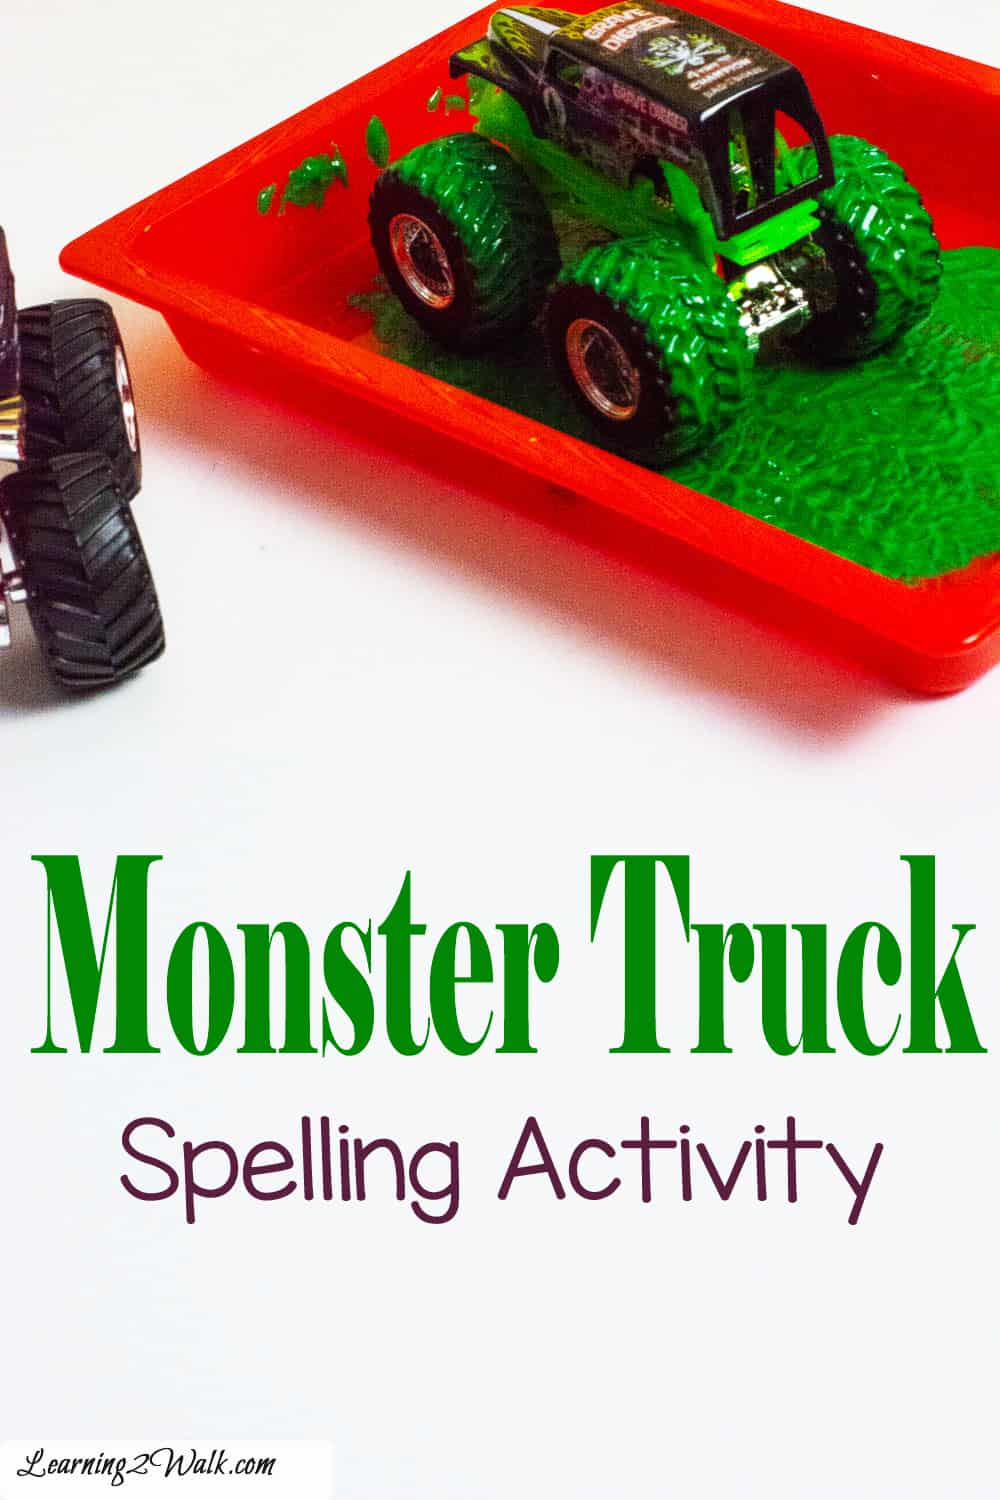 Monster truck spelling practice is a guaranteed fun way to practice spelling words